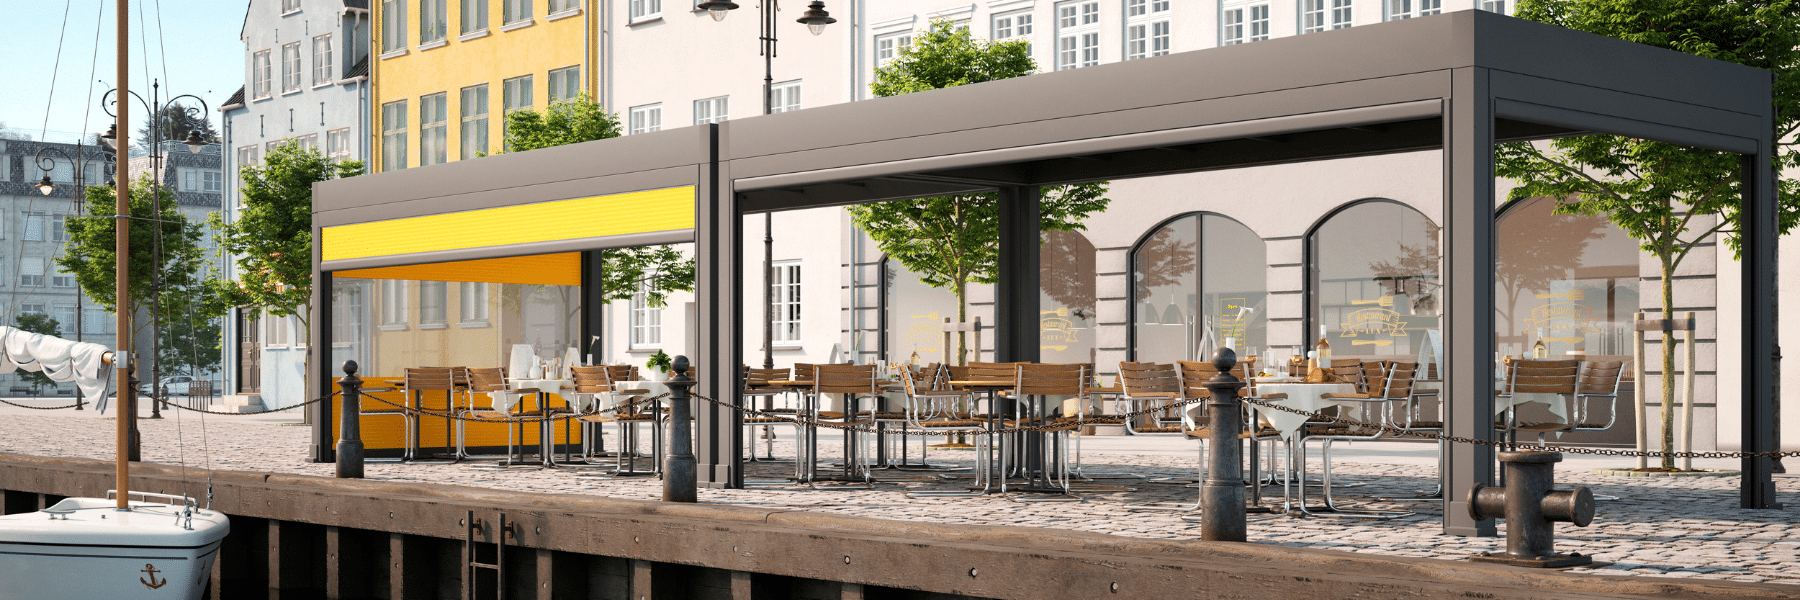 <p>Markilux Markant Restaurant Terrace Covered Hospitality Space situated by a harbour setting.</p> <p></p> <p>Markant is freestanding retractable awning system for open spaces complementing high-end commercial hospitality outdoor areas allowing customers to spend as much time outdoors without compromising weather protection.</p>